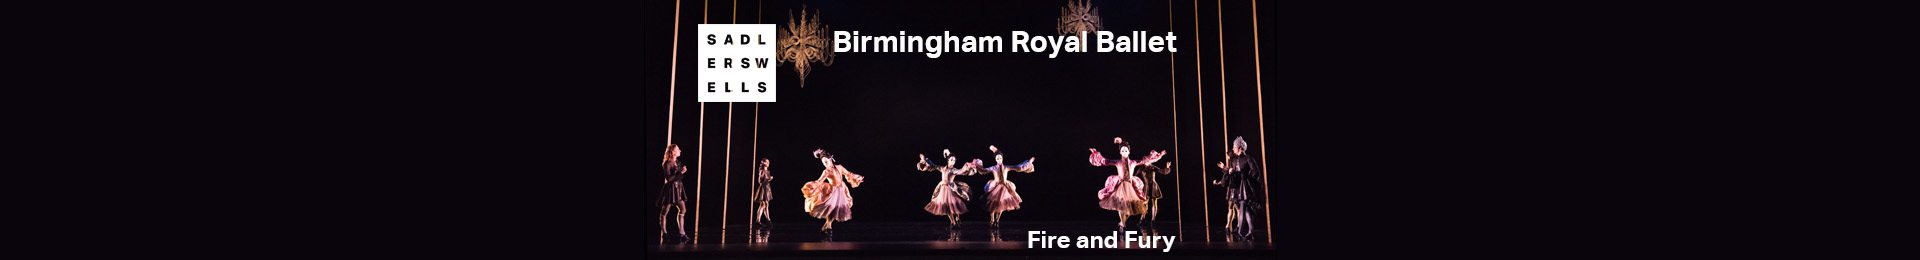 Birmingham Royal Ballet: Fire and Fury Sadlers Wells Tickets